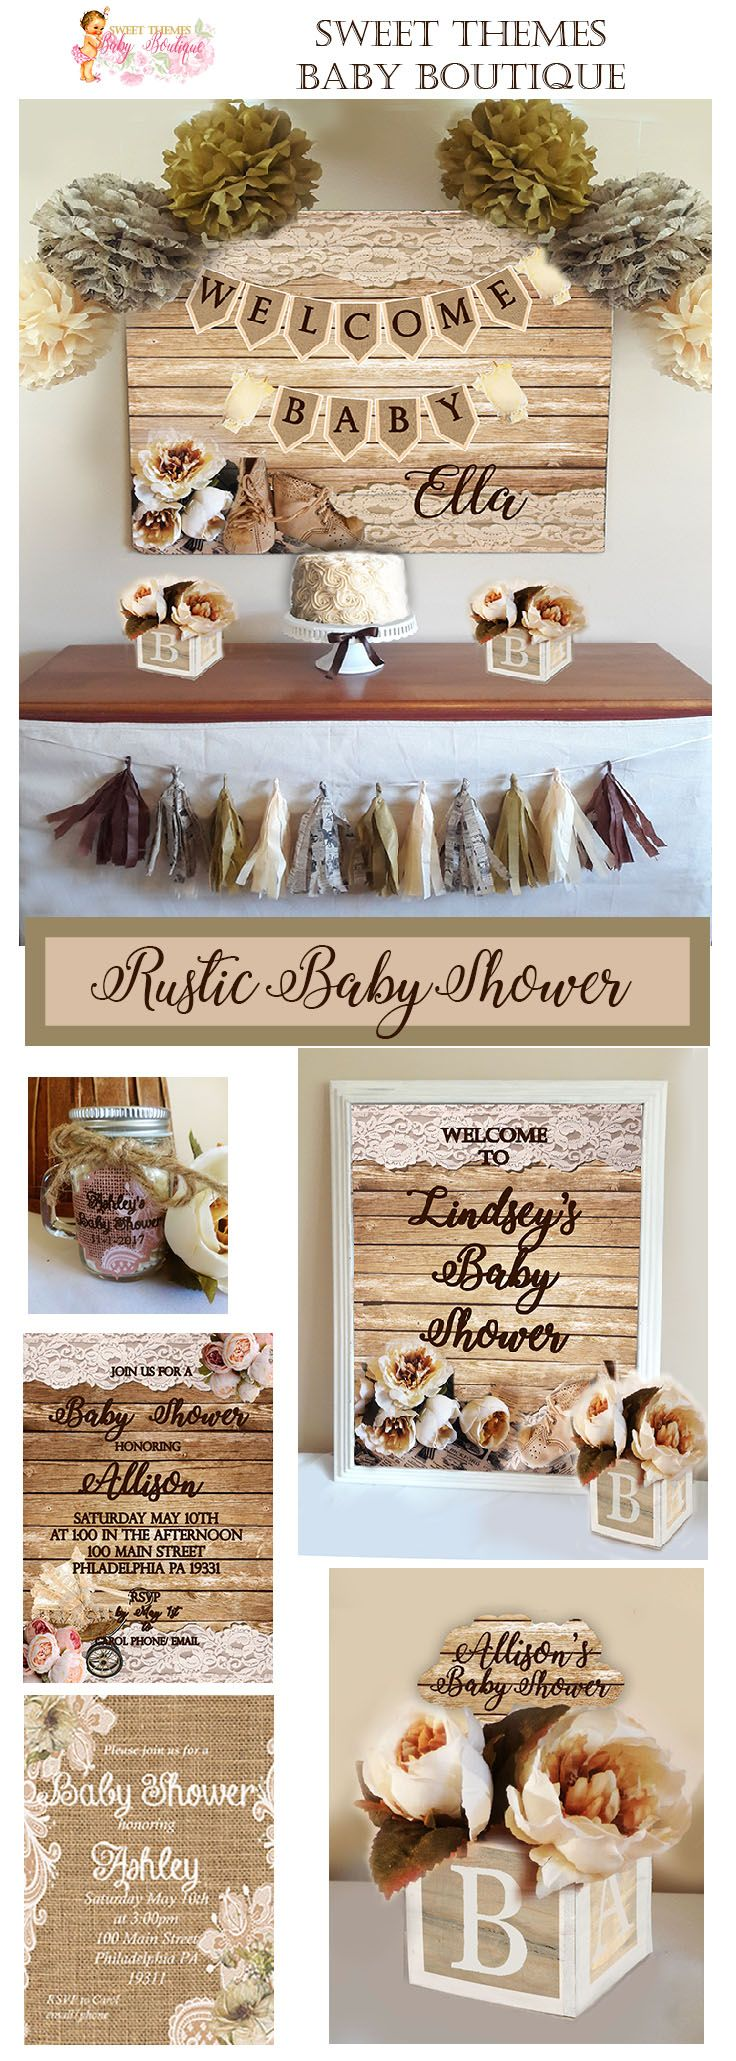 Rustic Baby Shower, Rustic Baby Shower Collections, Baby Shower, Baby Shower Decorations, Baby Shower Invitations Tap the link now to find the hottest products for your baby!